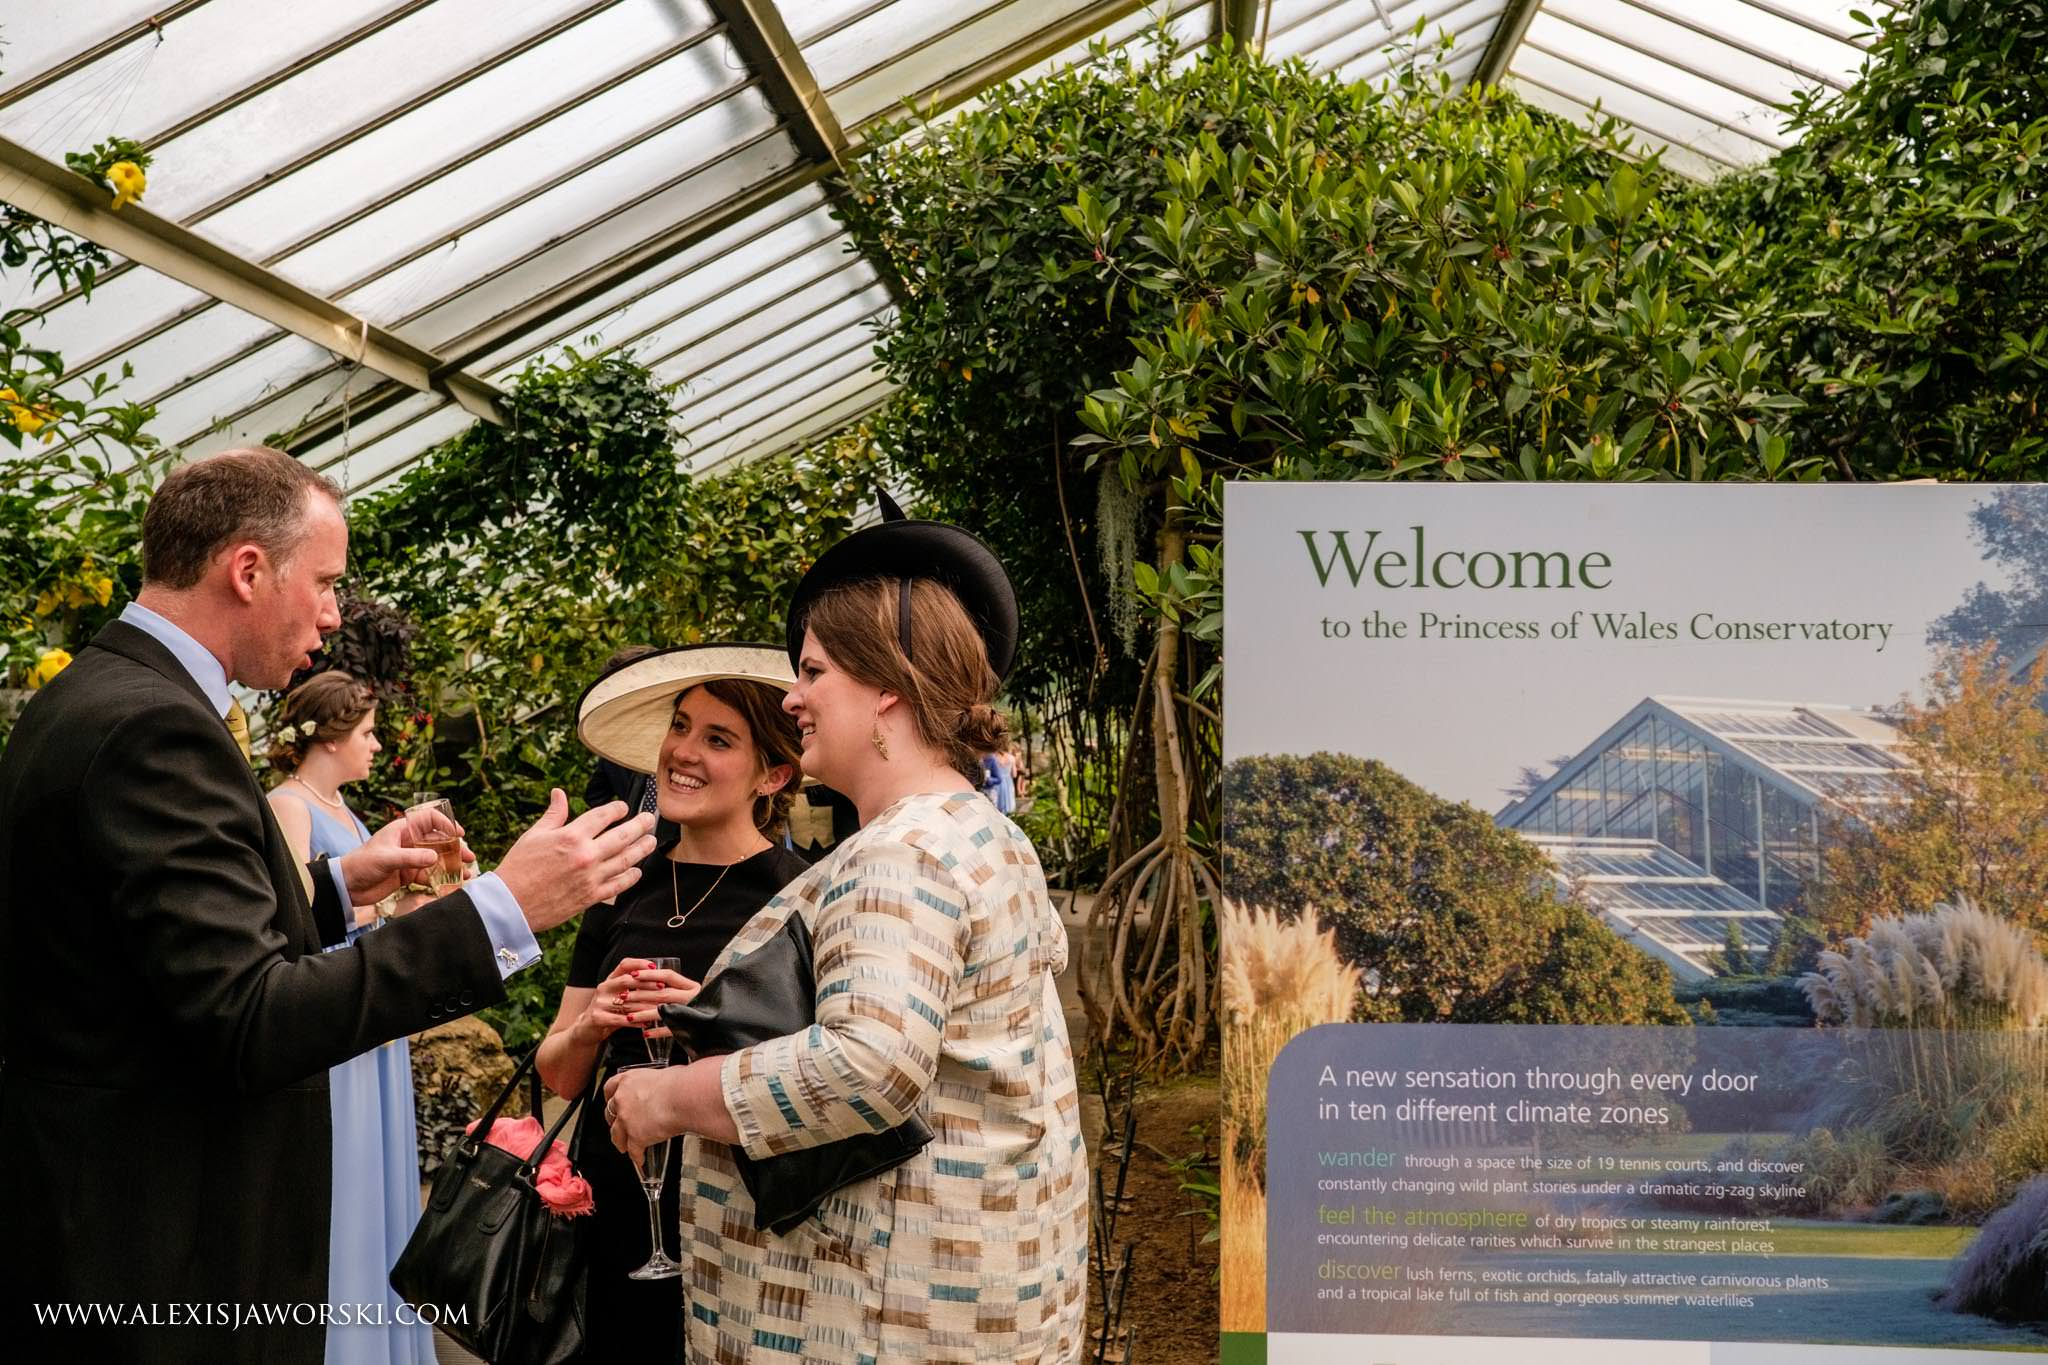 The princess of Wales Conservatory